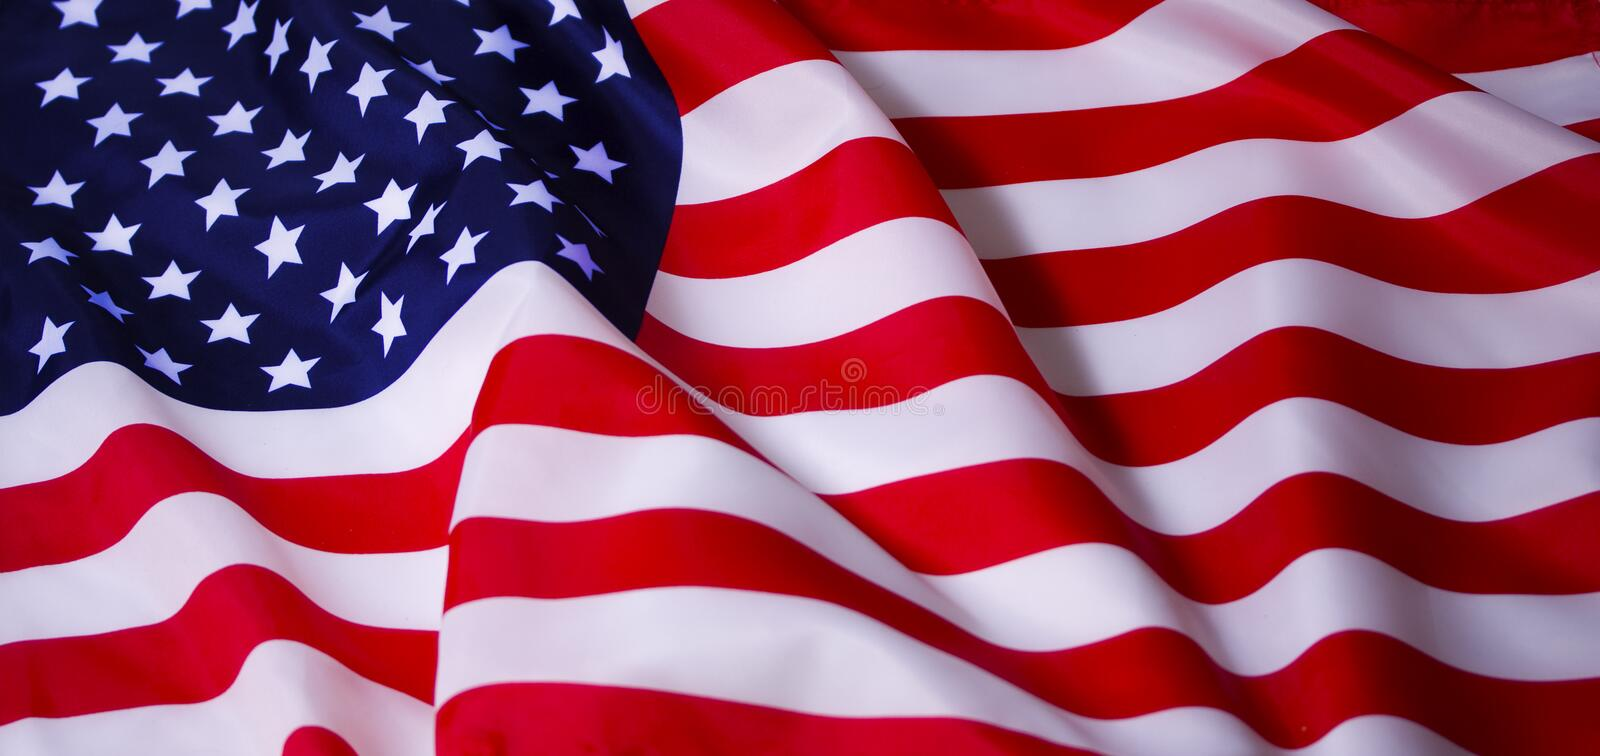 Waving American flag royalty free stock image